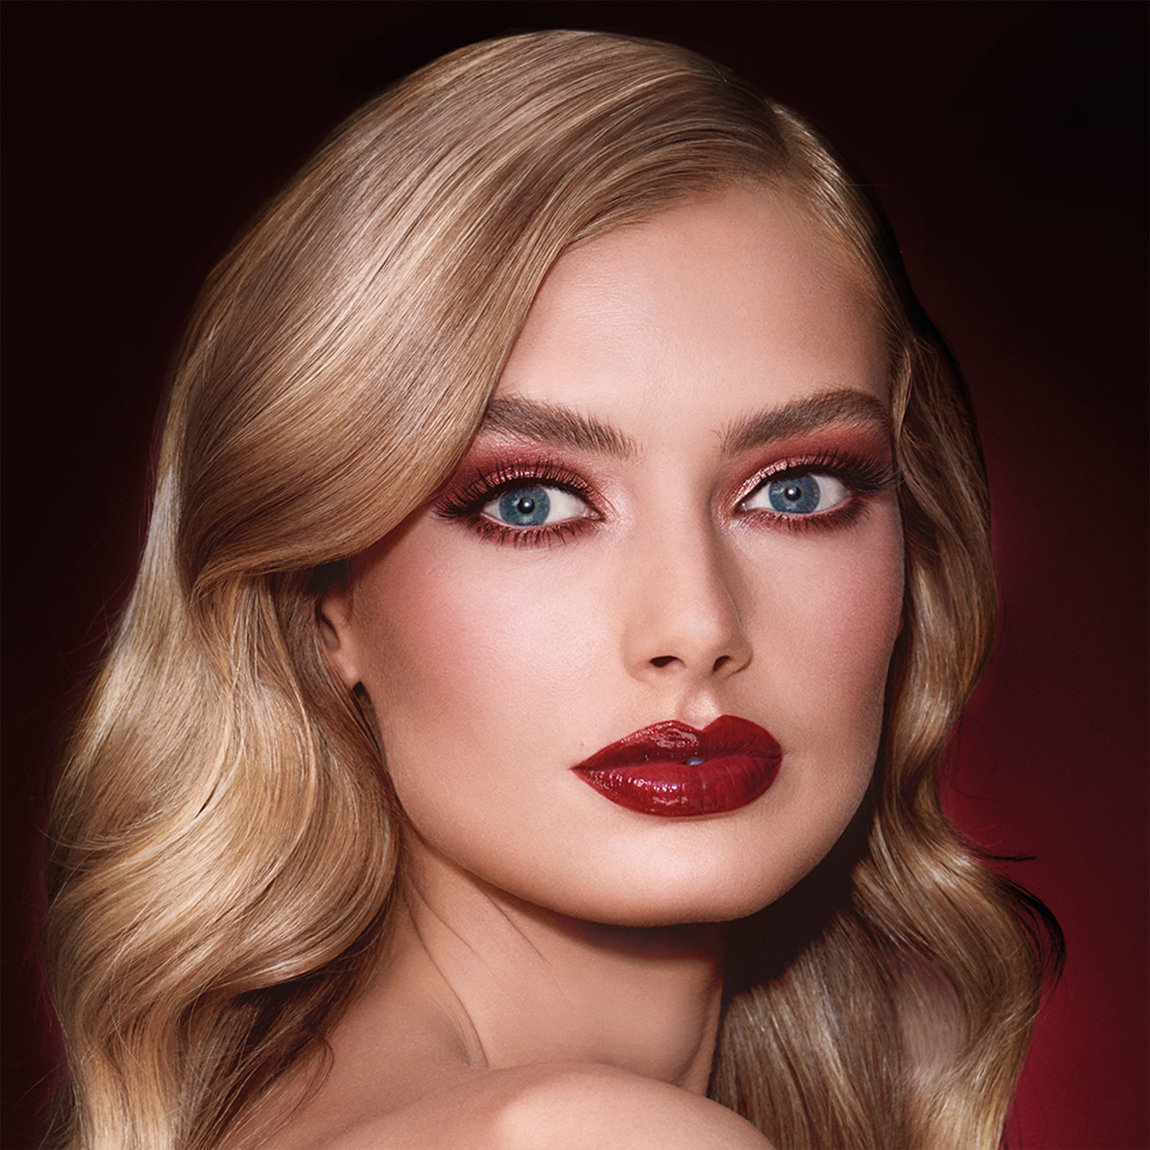 Charlotte Tilbury Get the Look The Vintage Vamp product swatch.